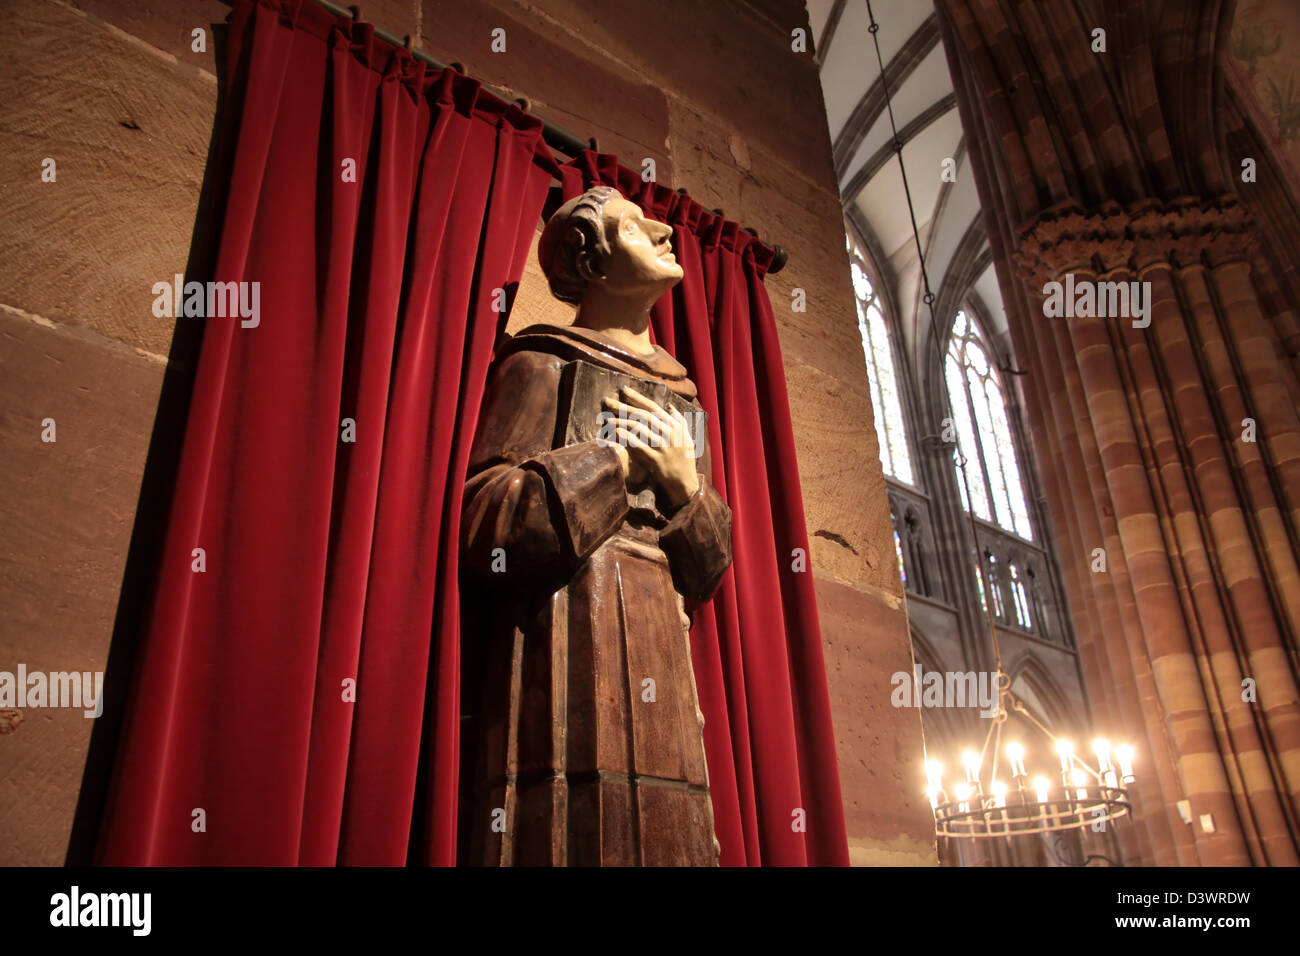 Praying monk with red drop curtain in Strasbourg, Alsace, France - Stock Image